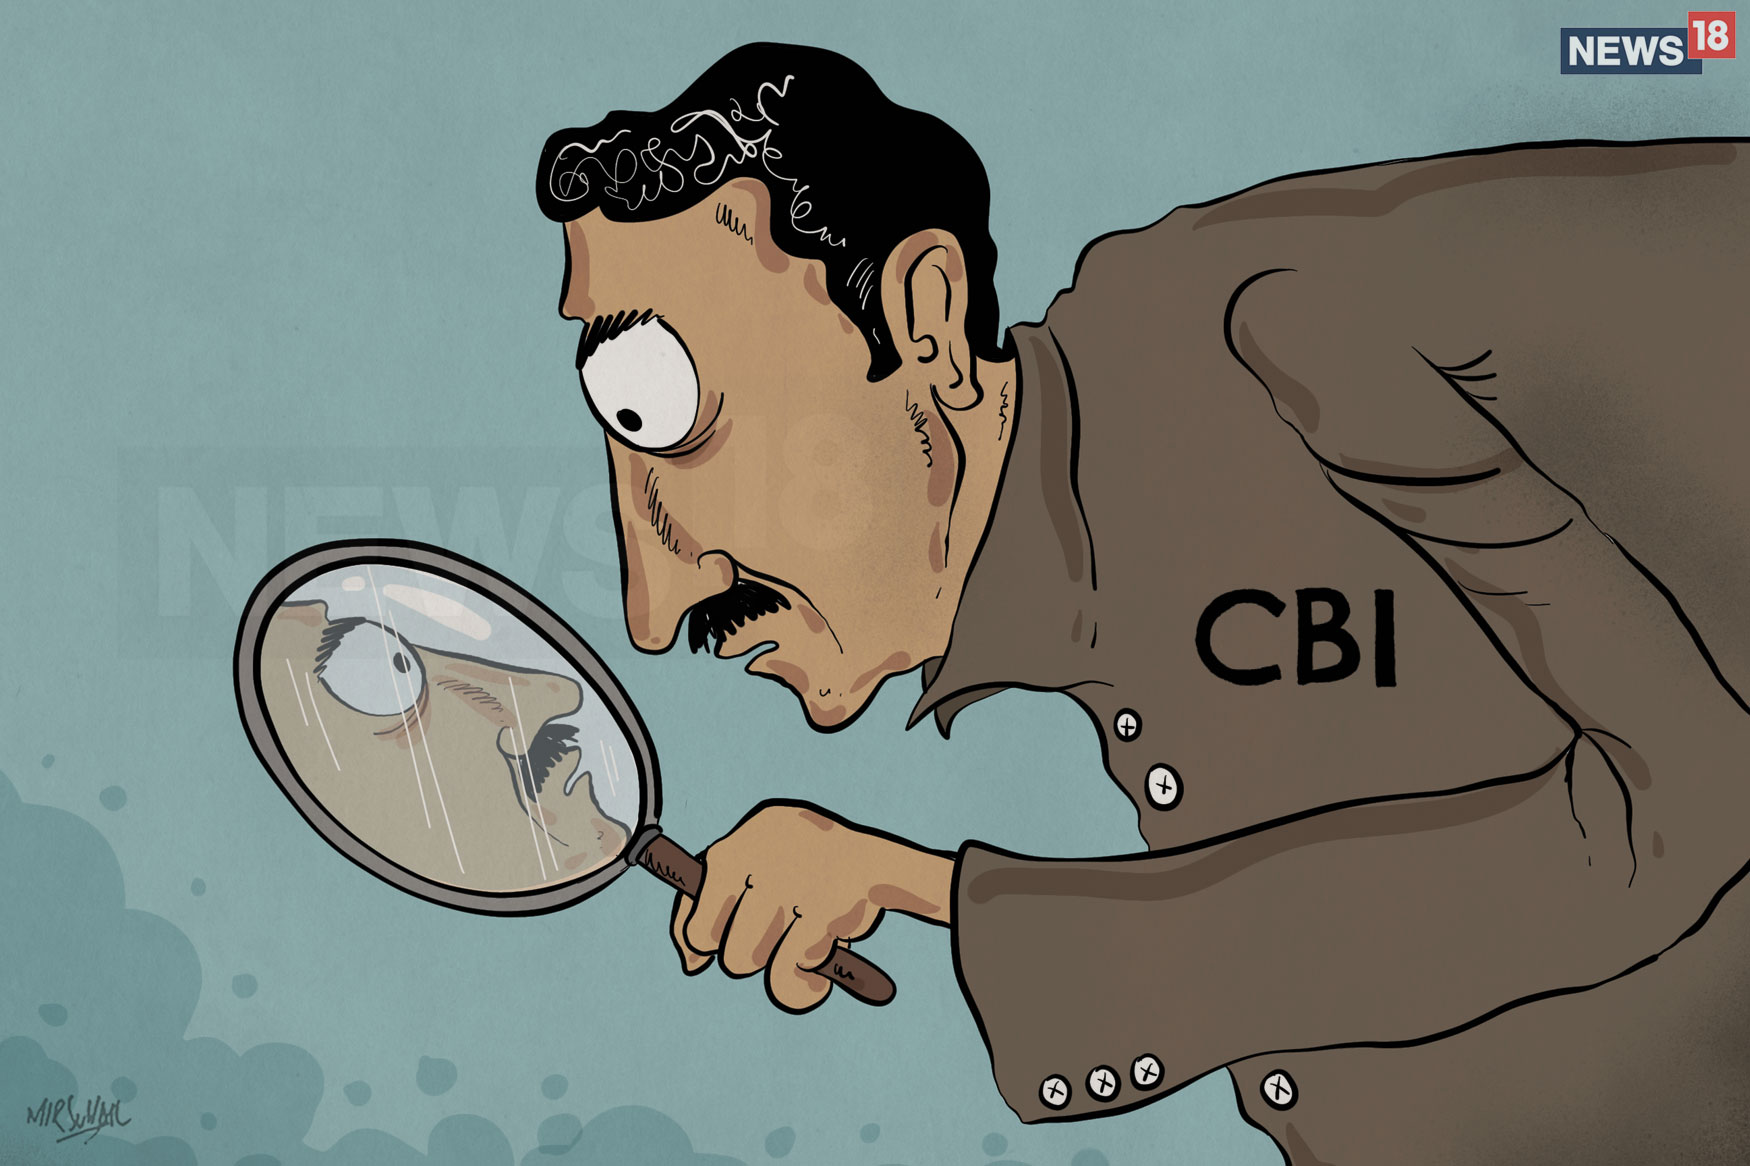 Our men were on routine patrol near CBI chief's home: IB